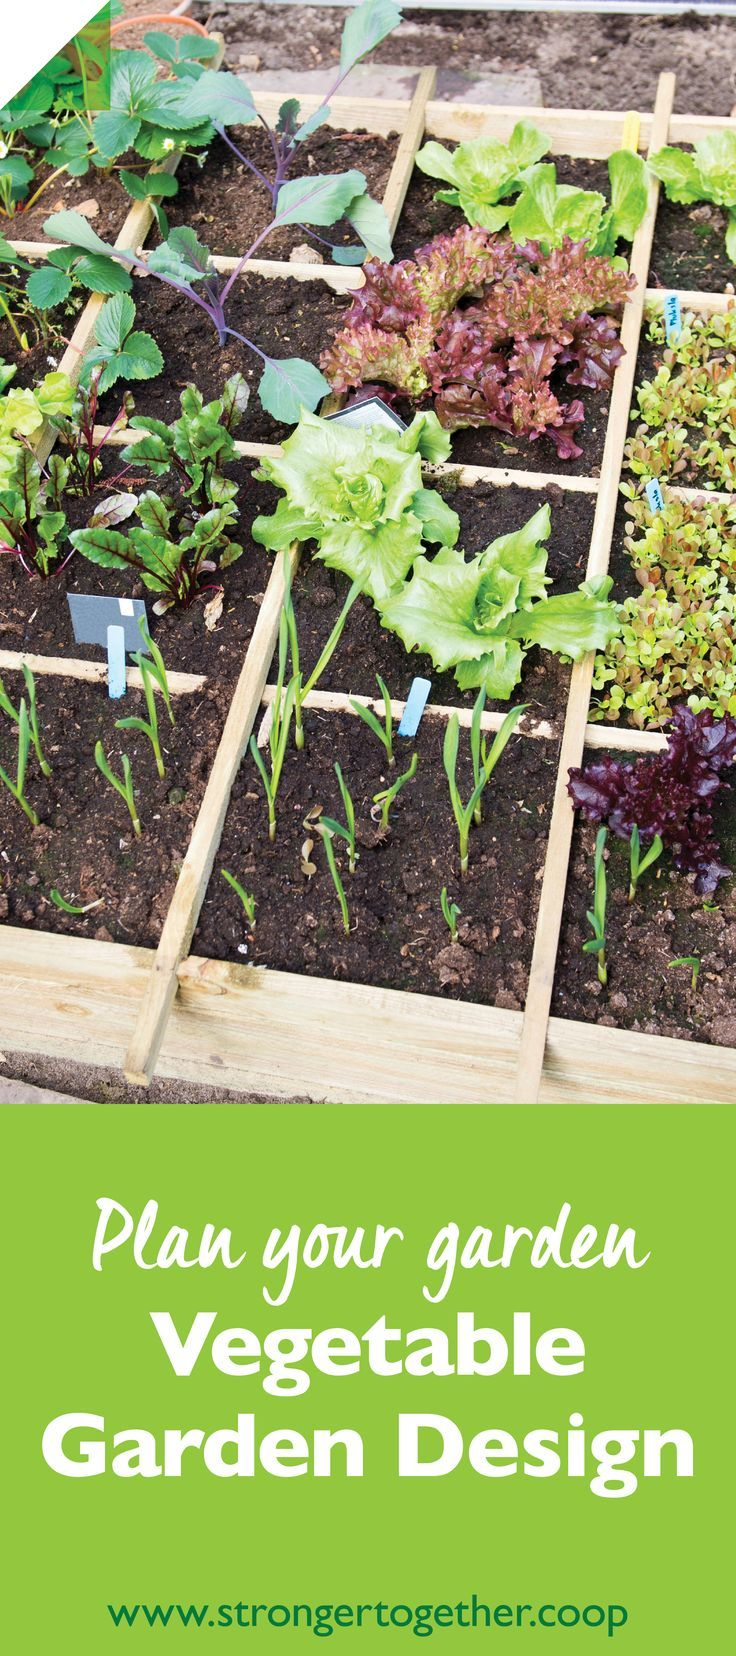 How much sun will your garden need how big should it be what should you plant these and other for How much sun does a garden need